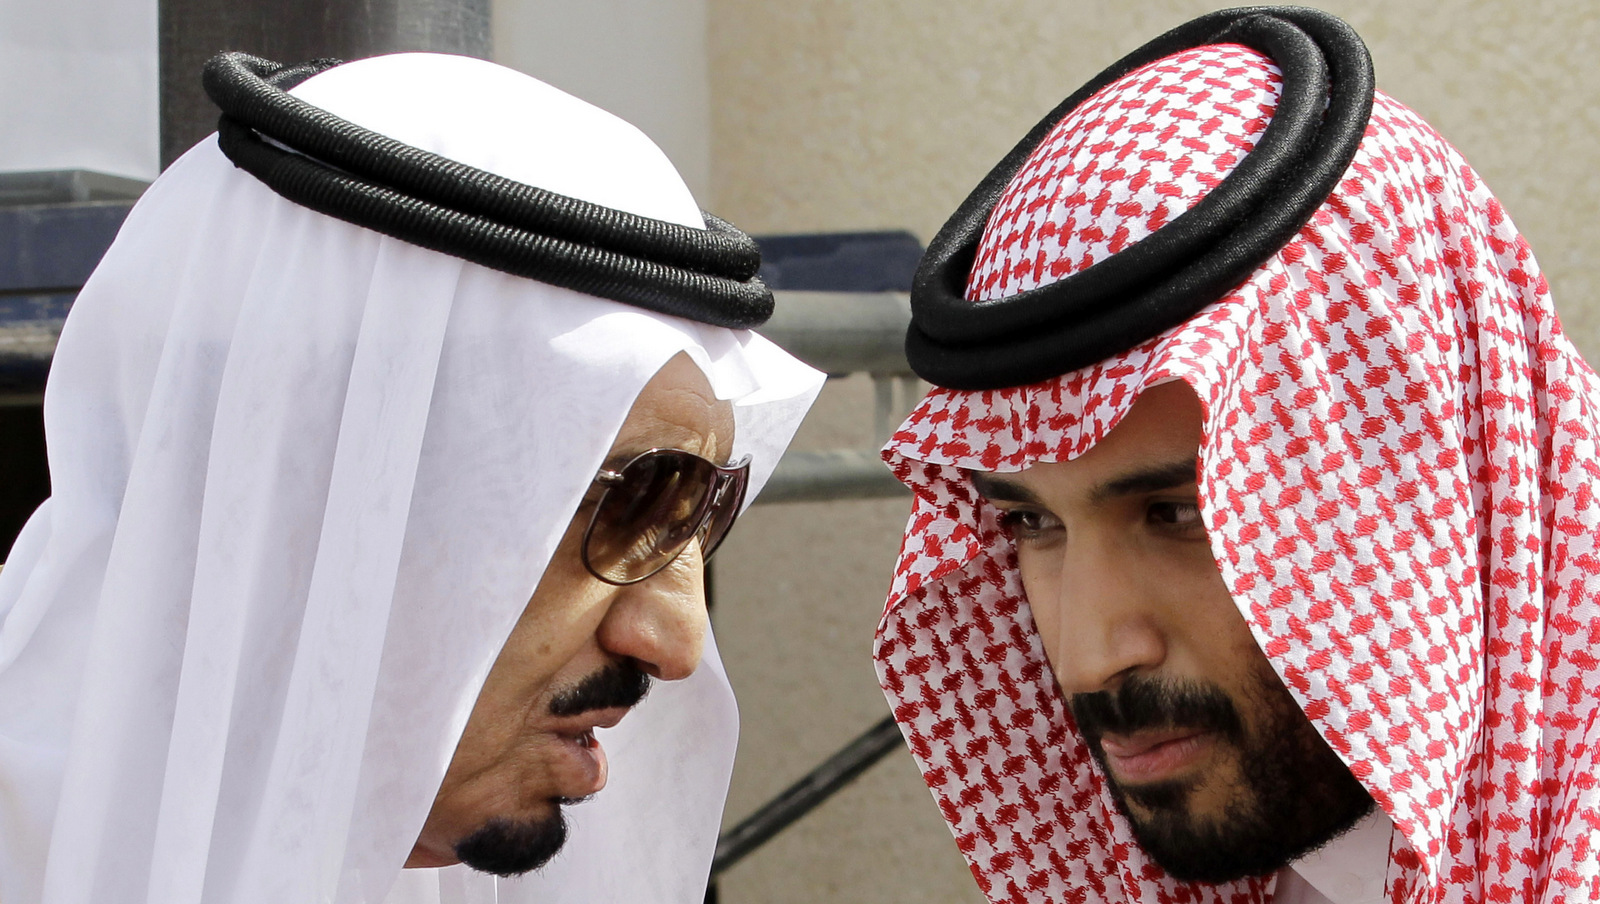 Saudi King Salman, left, speaks with his son Prince Mohammed bin Salman as they wait for Gulf Arab leaders ahead of the opening of a Gulf Cooperation Council summit, in Riyadh, Saudi Arabia. On Wednesday, April 29, 2015. (AP Photo/Hassan Ammar)